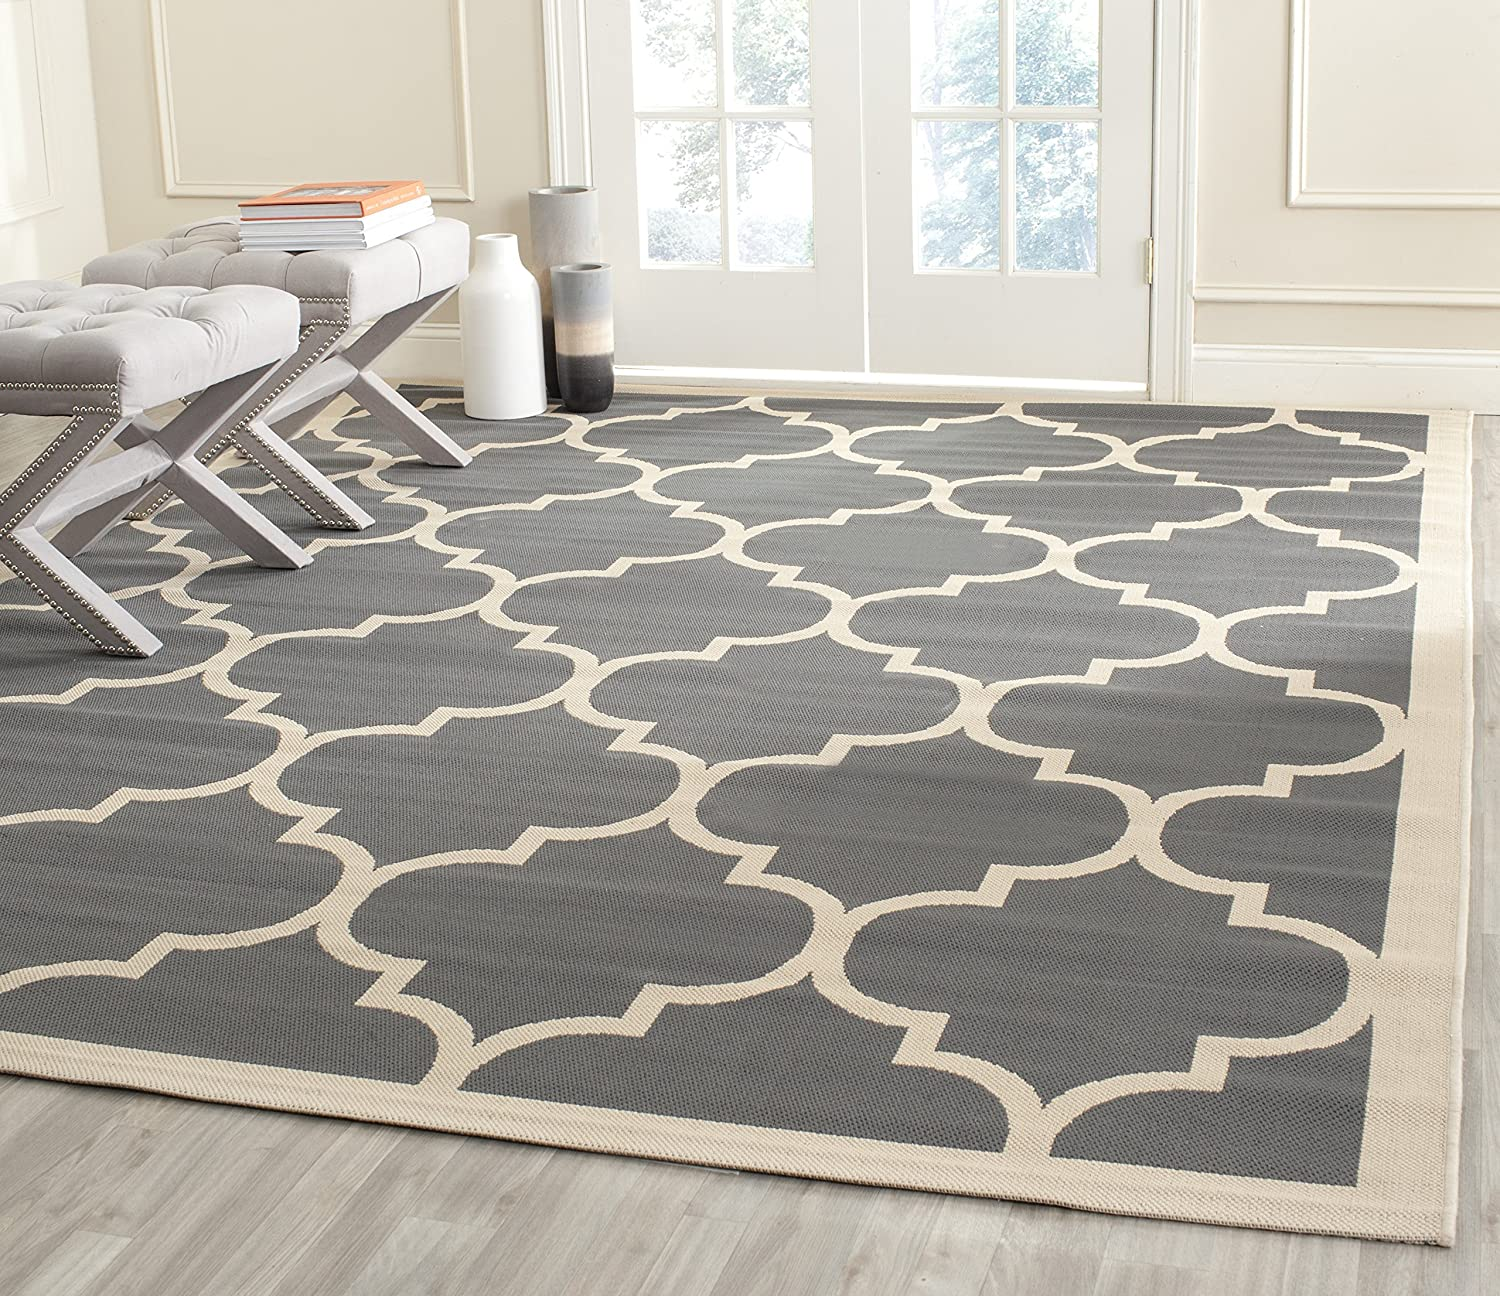 Safavieh Courtyard Collection CY6914-246 Anthracite and Beige Indoor  Outdoor Square Area Rug (7'10  Square)